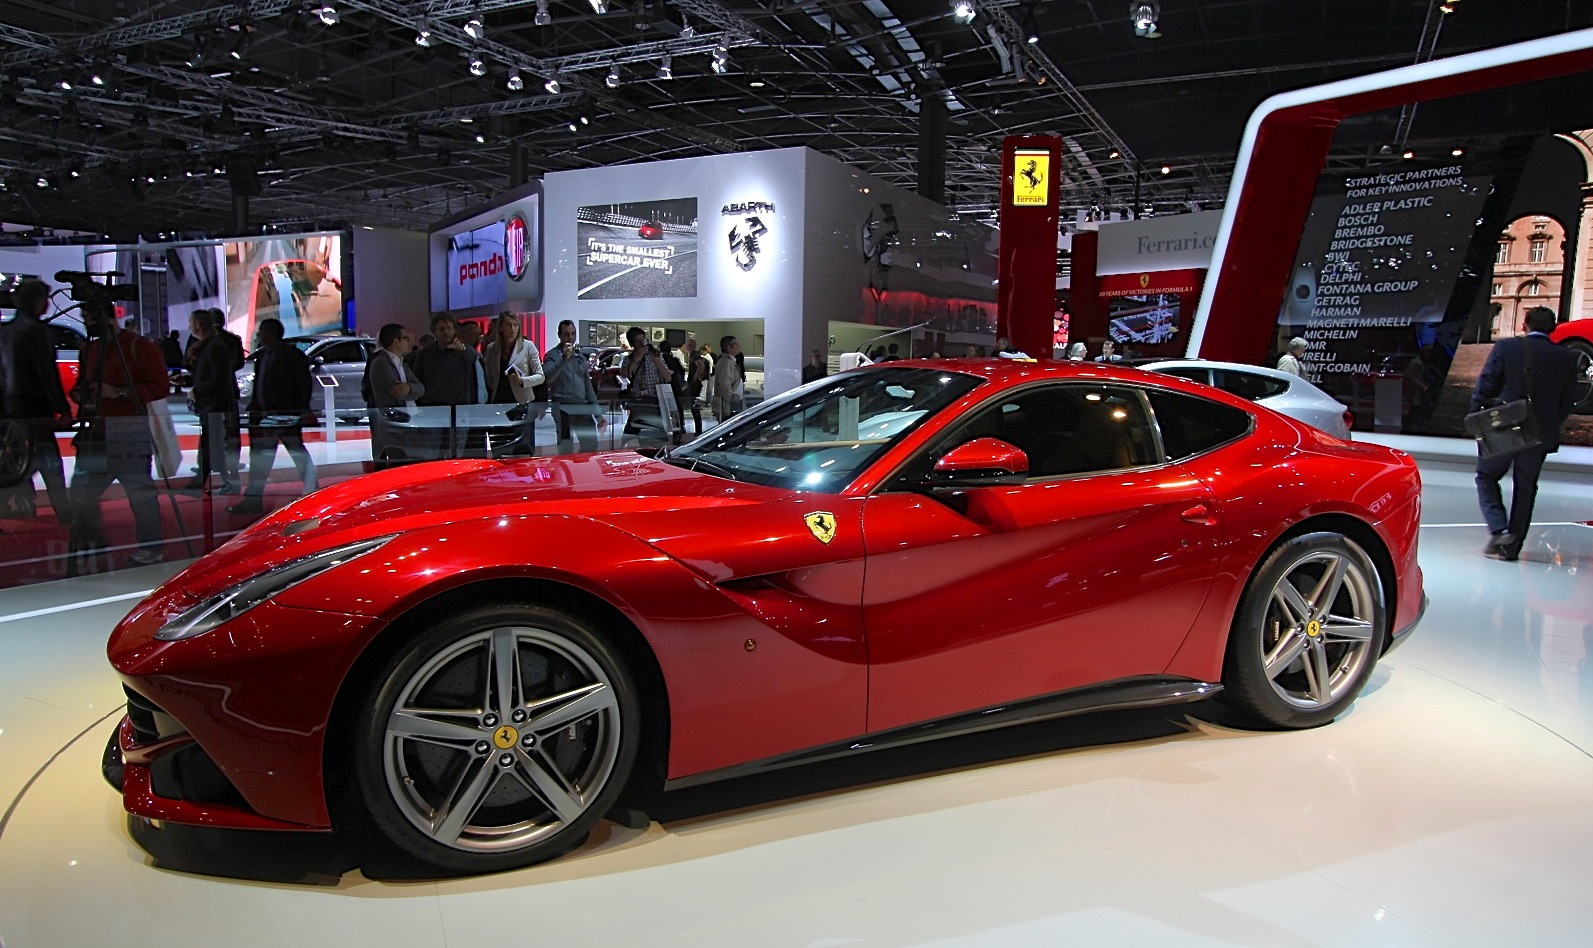 Nissan Kansas City >> 2013 Ferrari F12 Berlinetta Review, Ratings, Specs, Prices, and Photos - The Car Connection